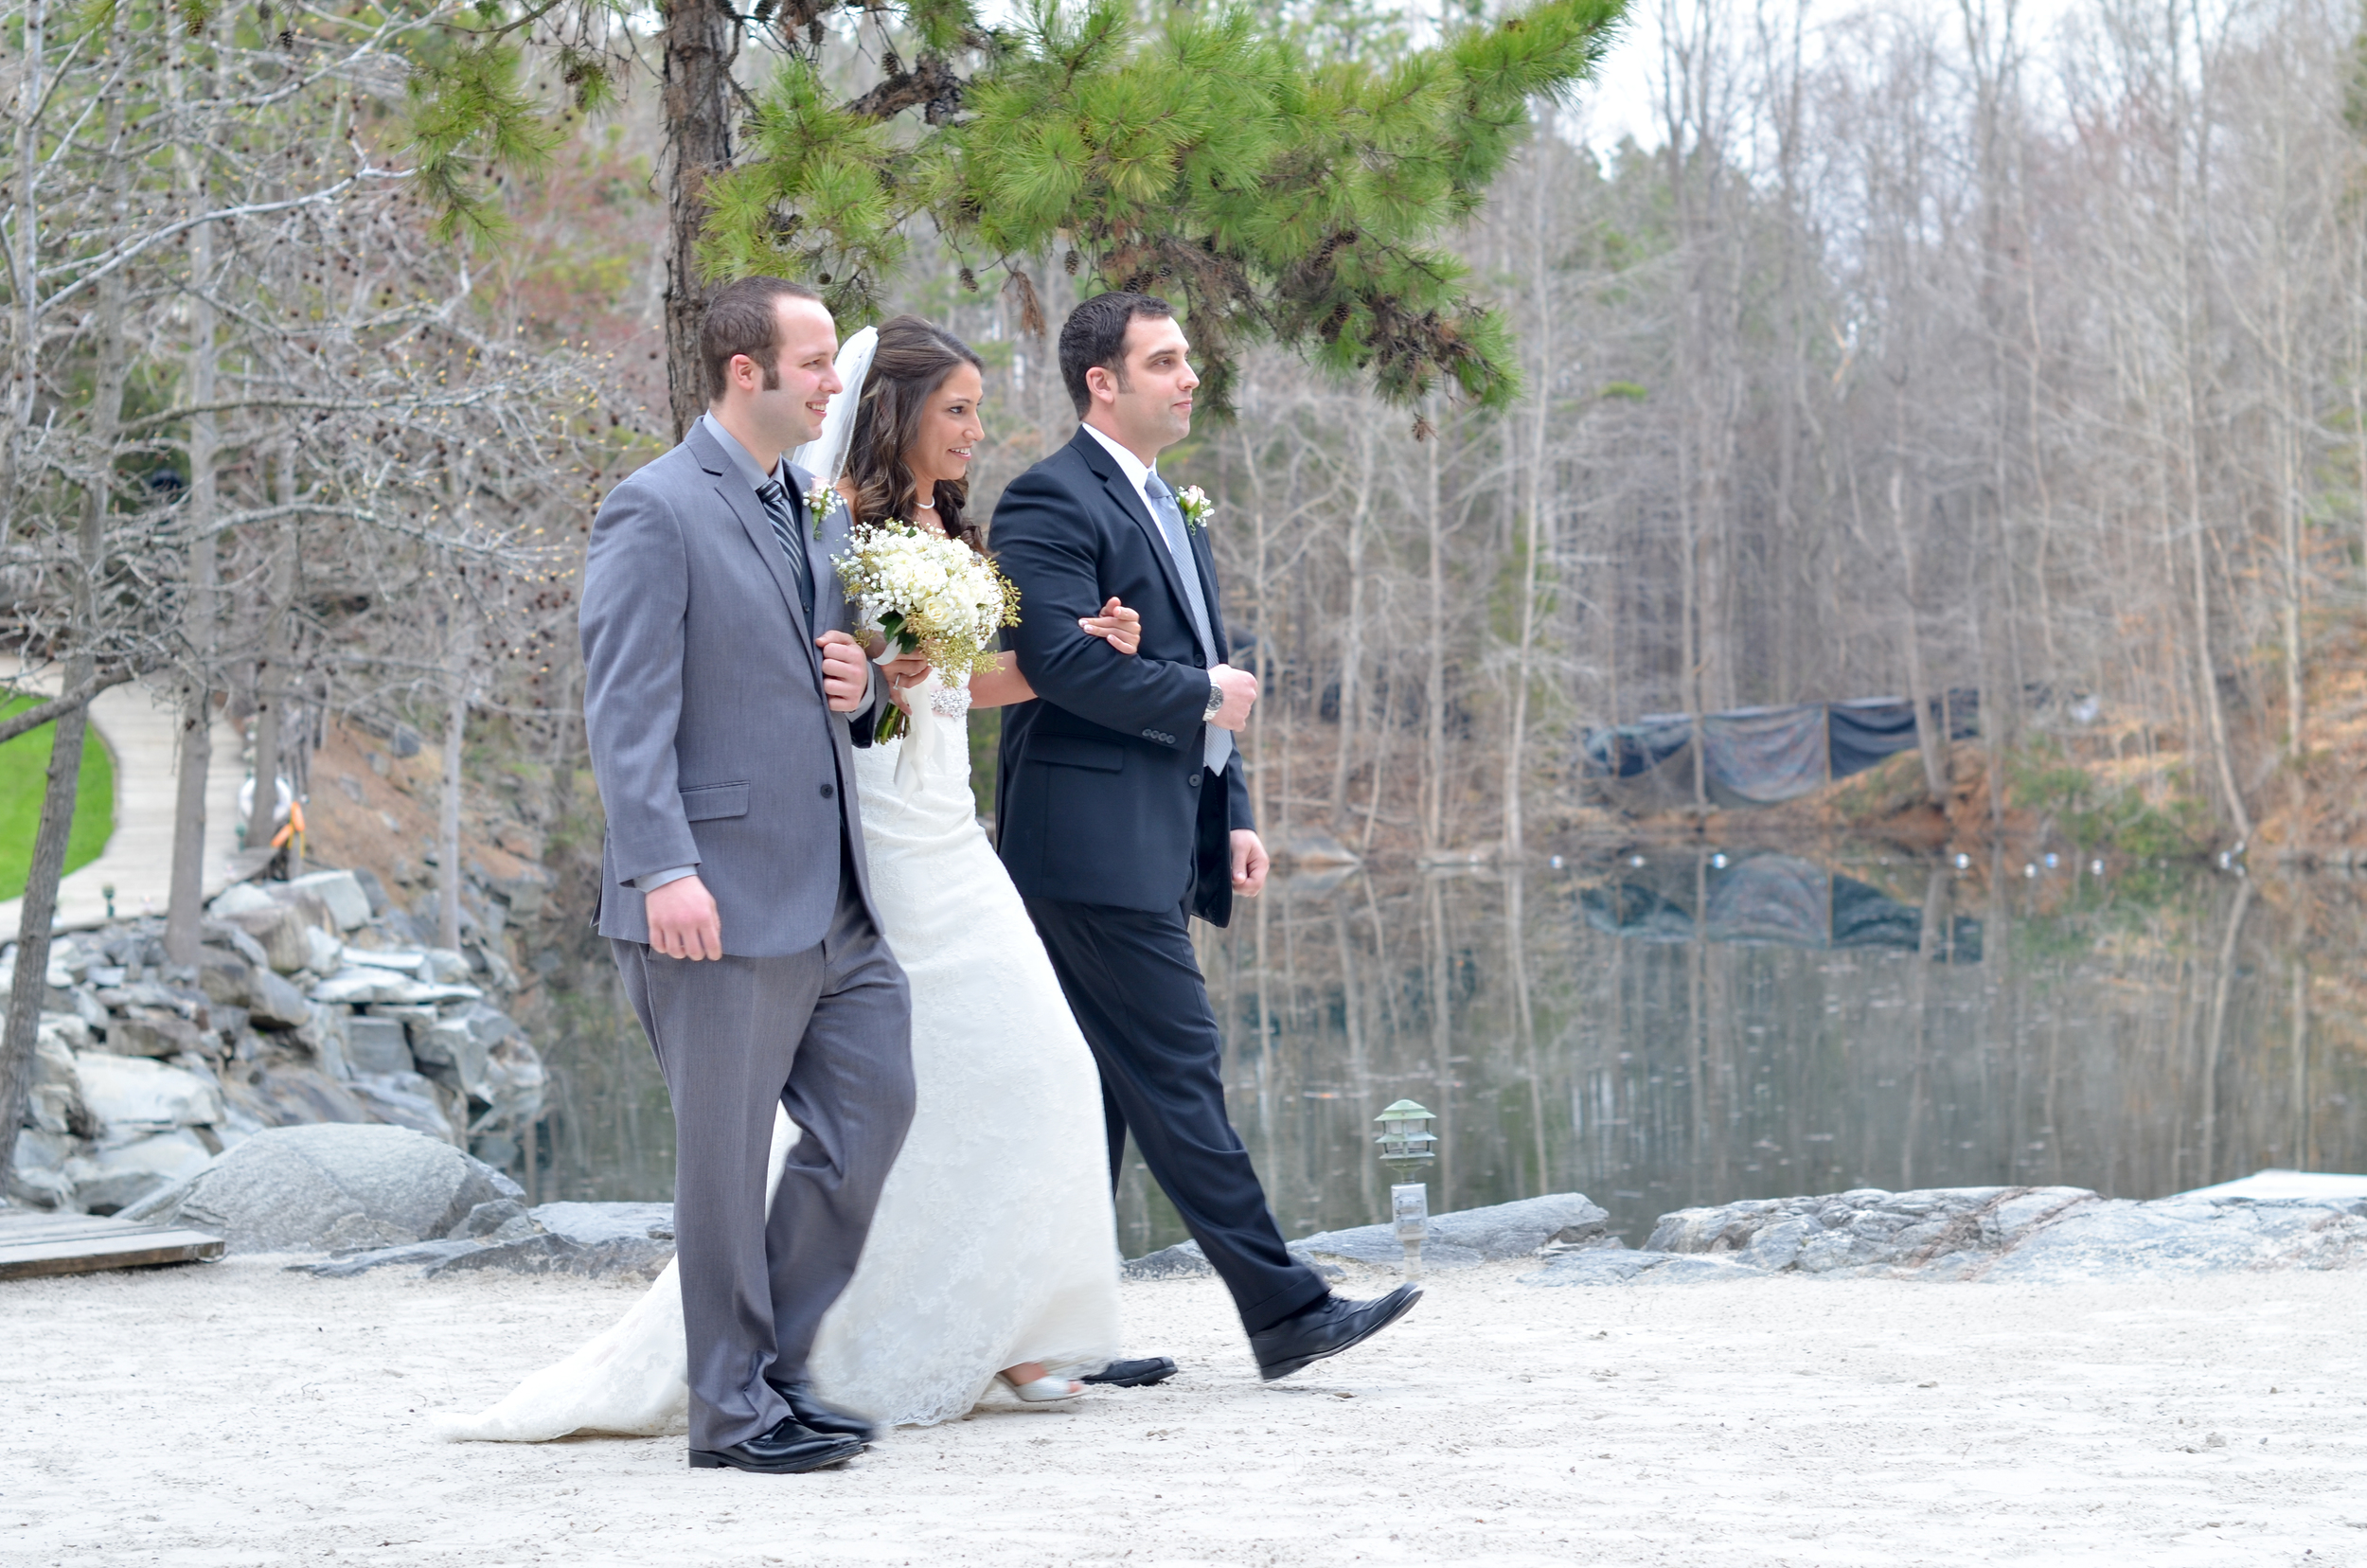 This wedding was really unique in that the bride's father was the officiant. So in a change from tradition, her two brothers walked her down the aisle towards both her groom and her father. I loved it!